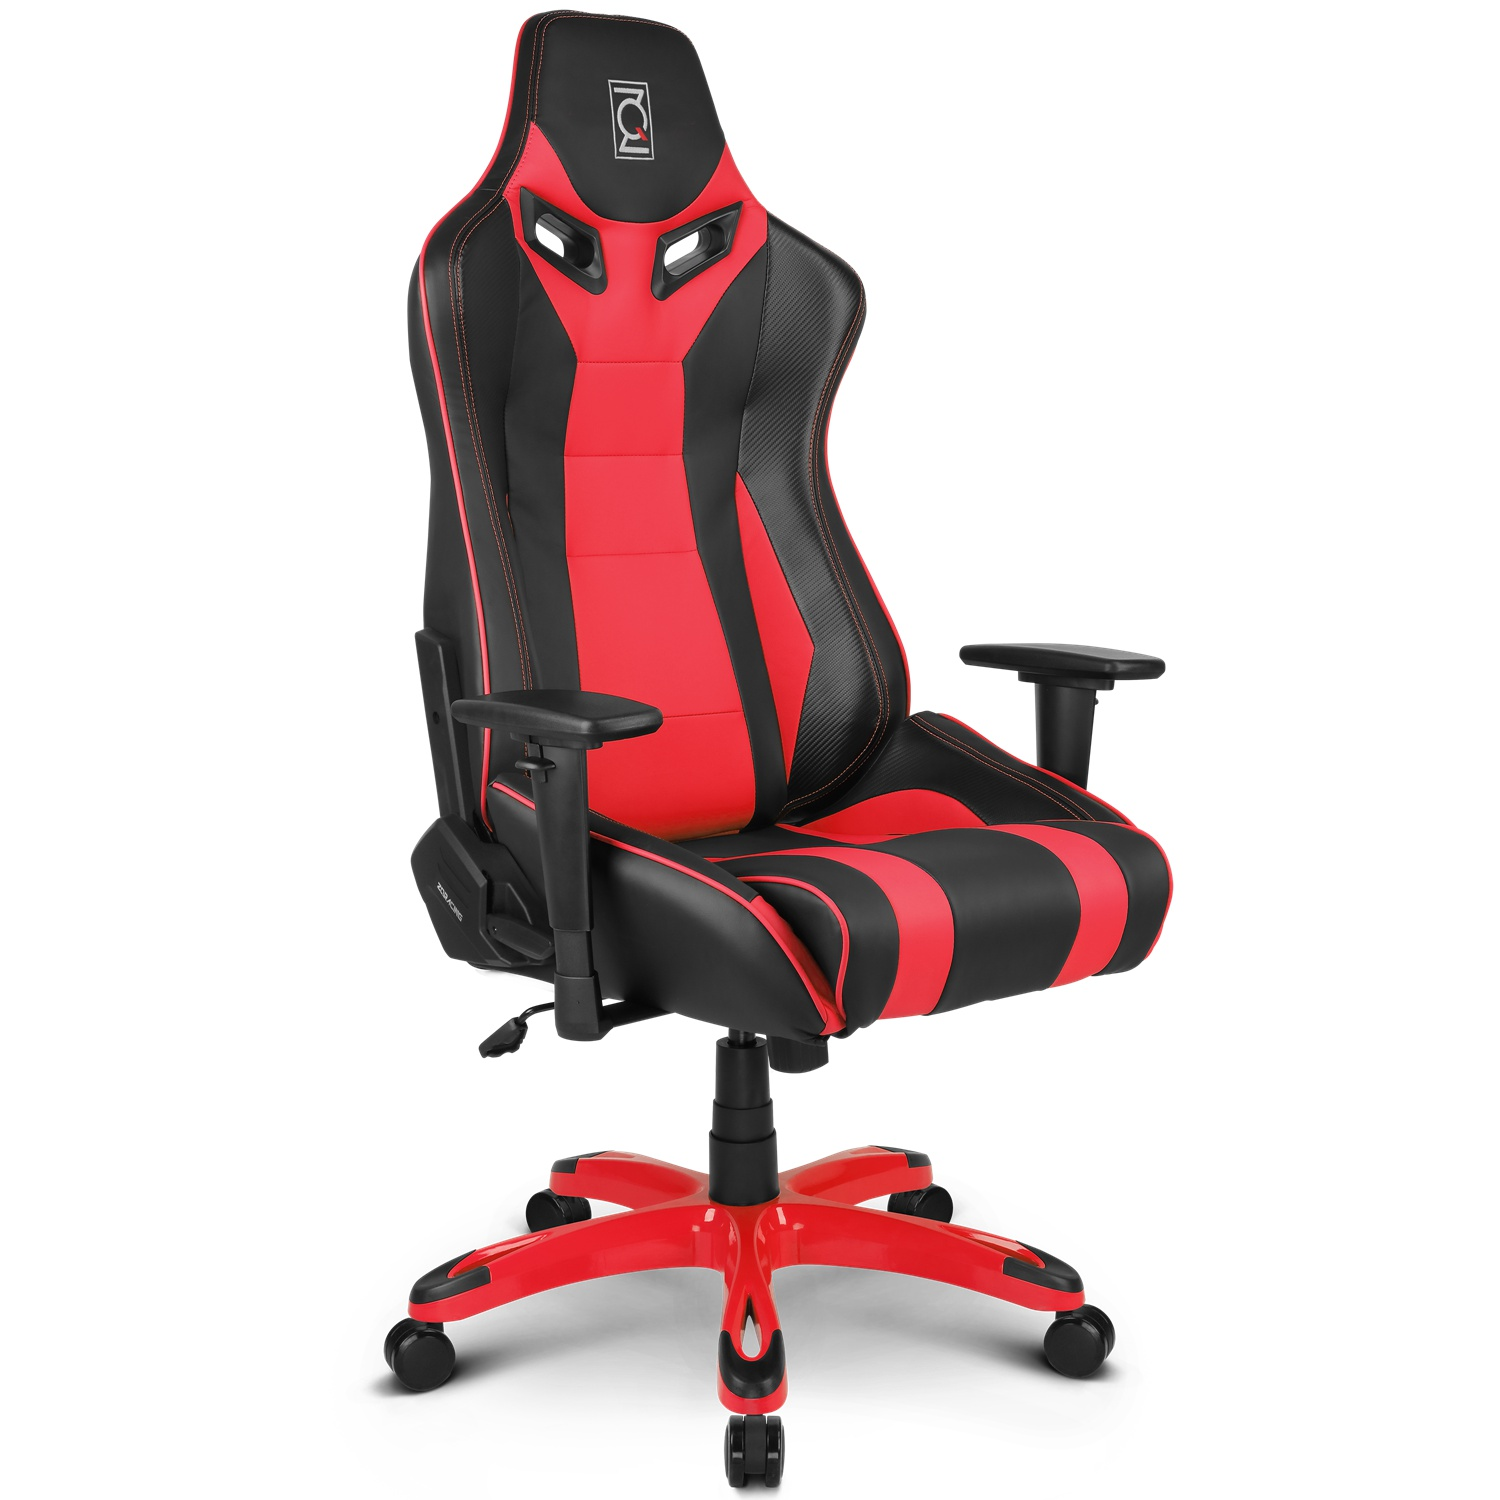 red and black gaming chair tommy bahama beach bjs zqracing alien series office